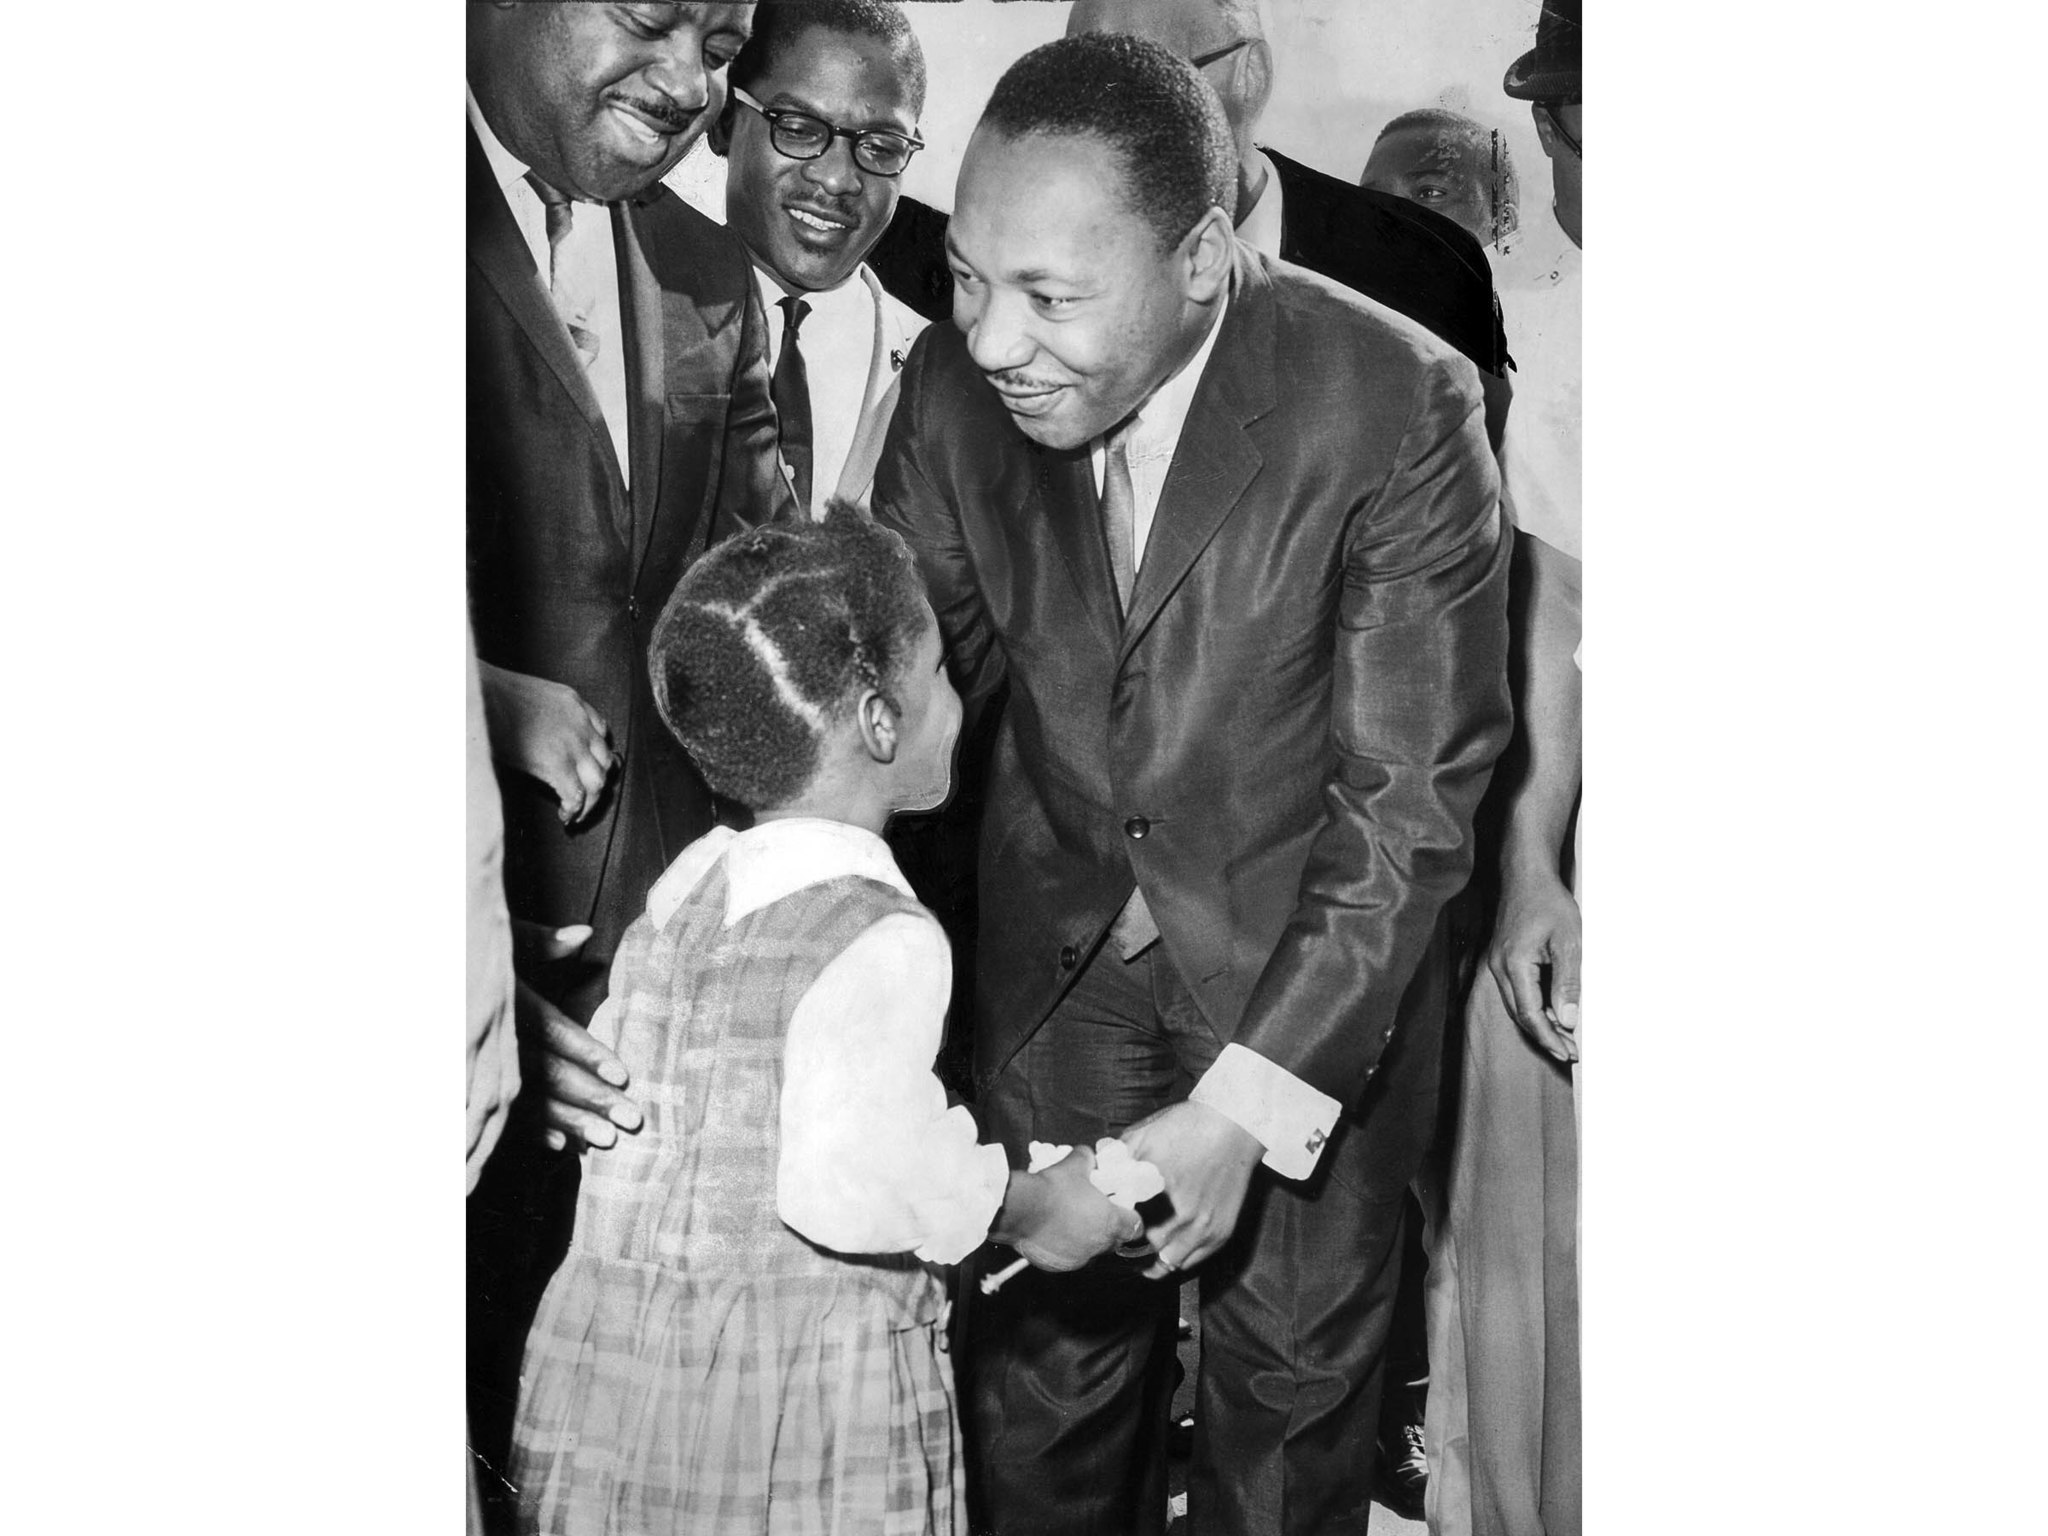 Oct. 27, 1964: Martin Luther King Jr. pauses to chat with young girl during a tour of the Nickerson